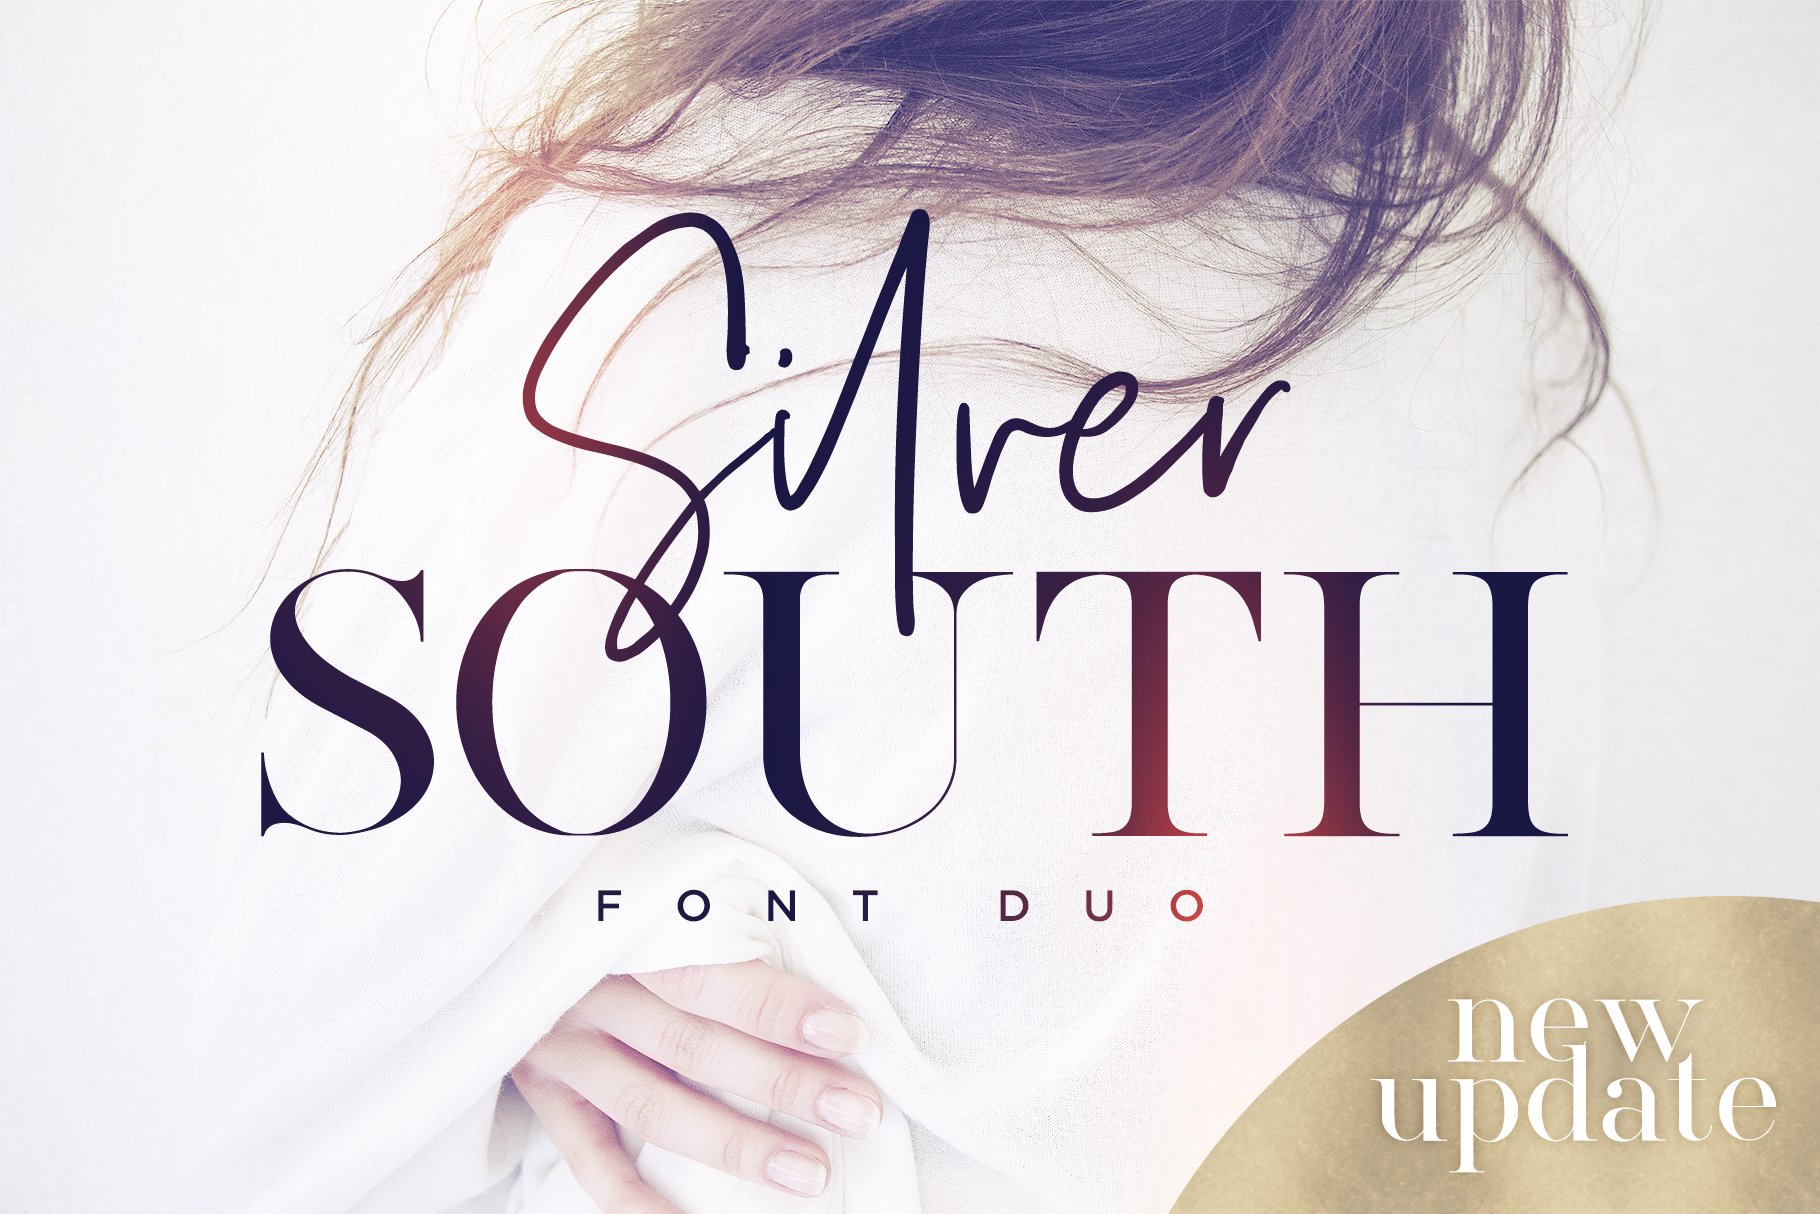 Silver south font duo new update script fonts creative market fandeluxe Choice Image